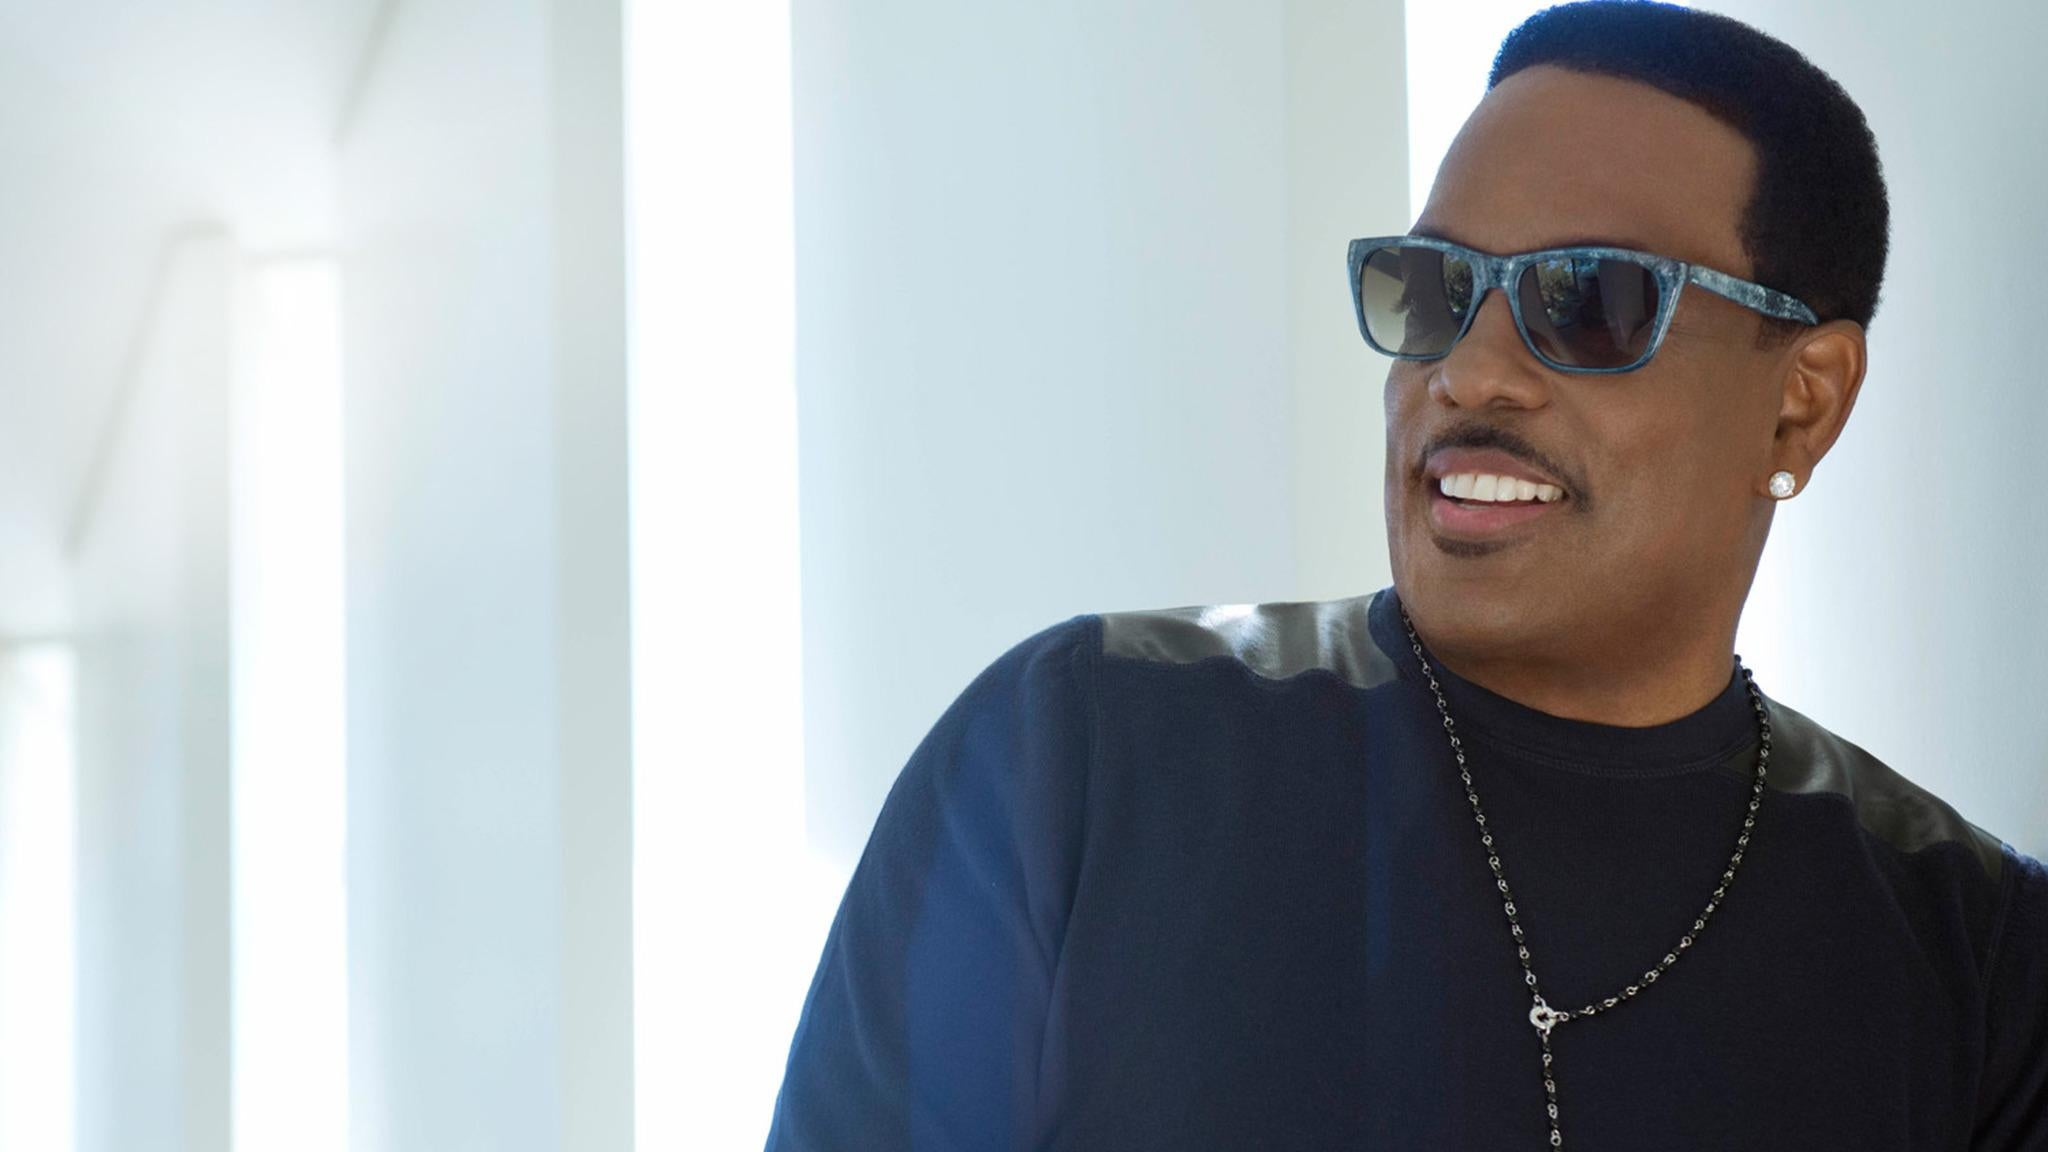 WDAS Holiday Jam with Charlie Wilson at The Met Philadelphia